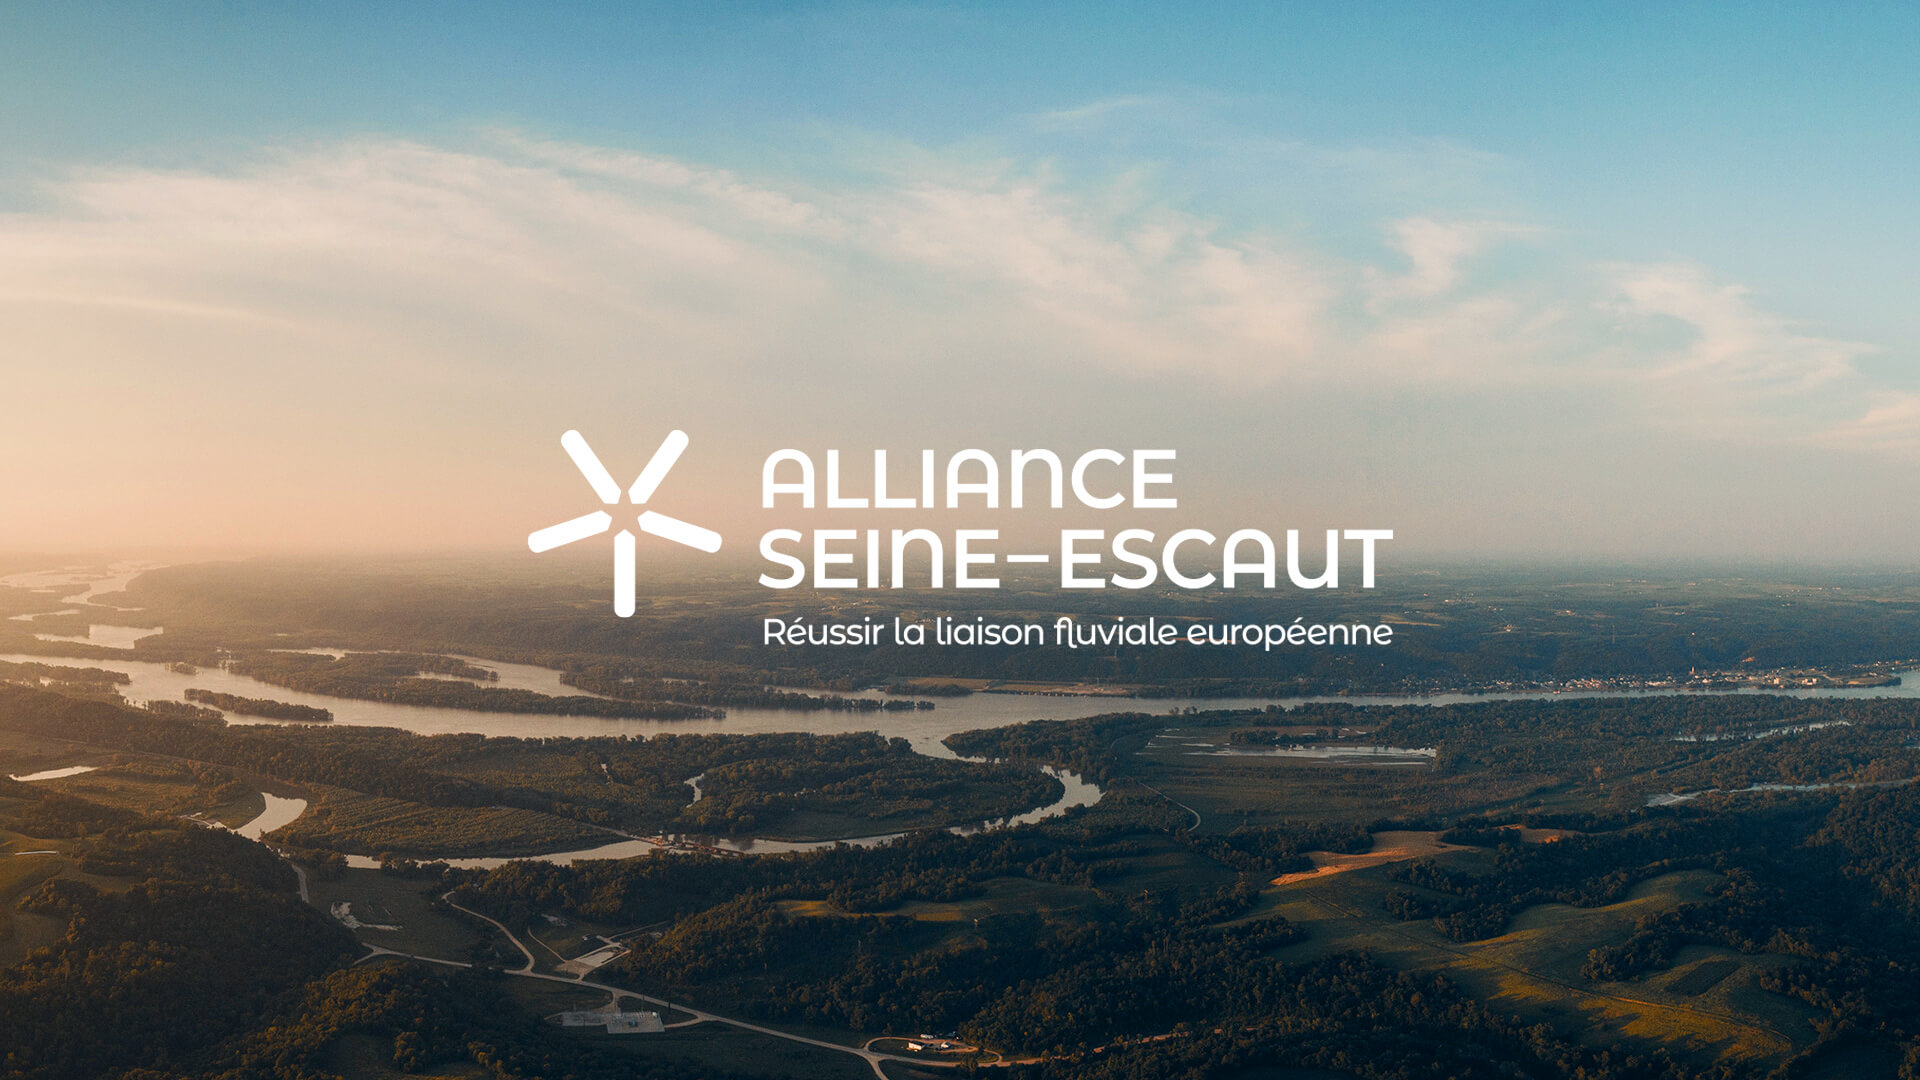 Nouveau logotype de l'Alliance Seine-Escaut